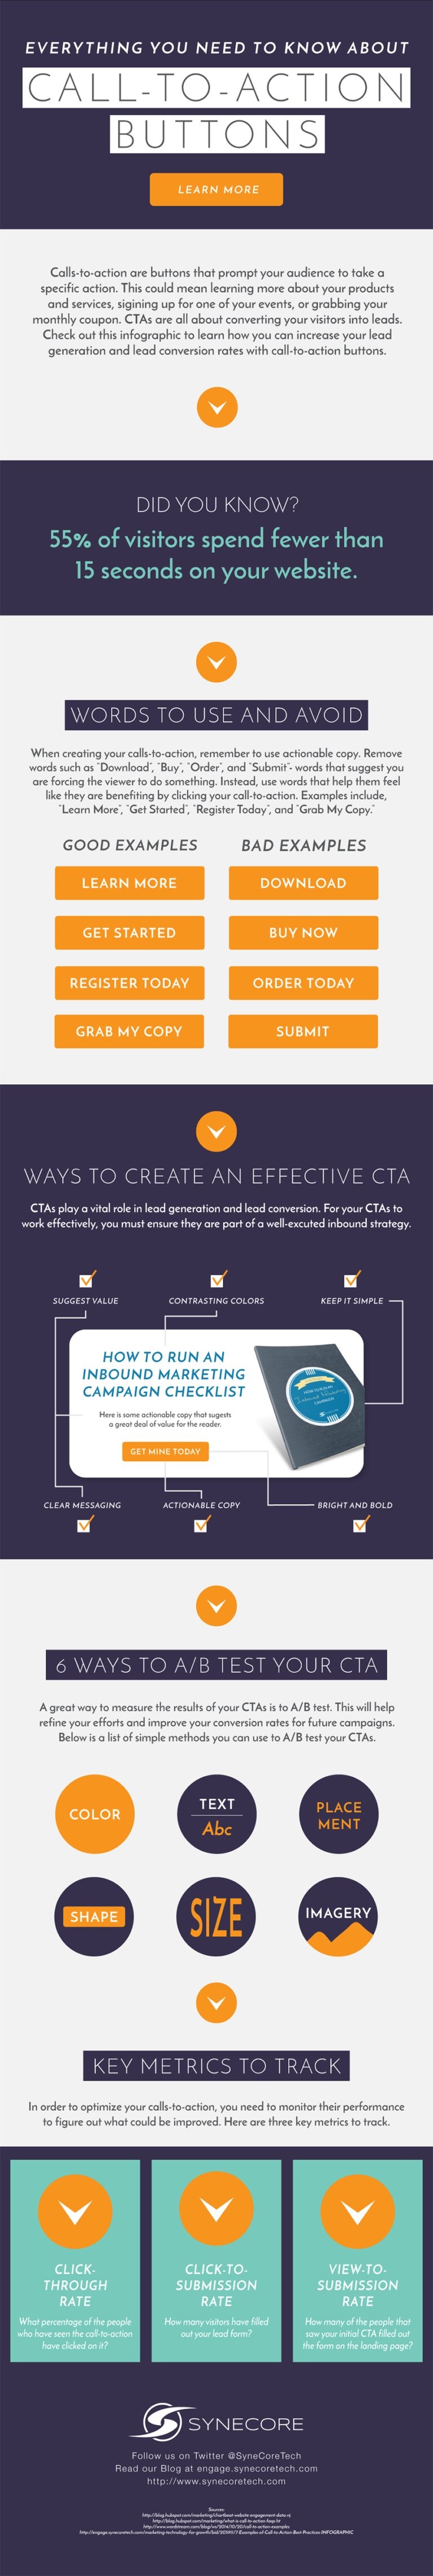 Infographic lists tips for effective website CTA buttons